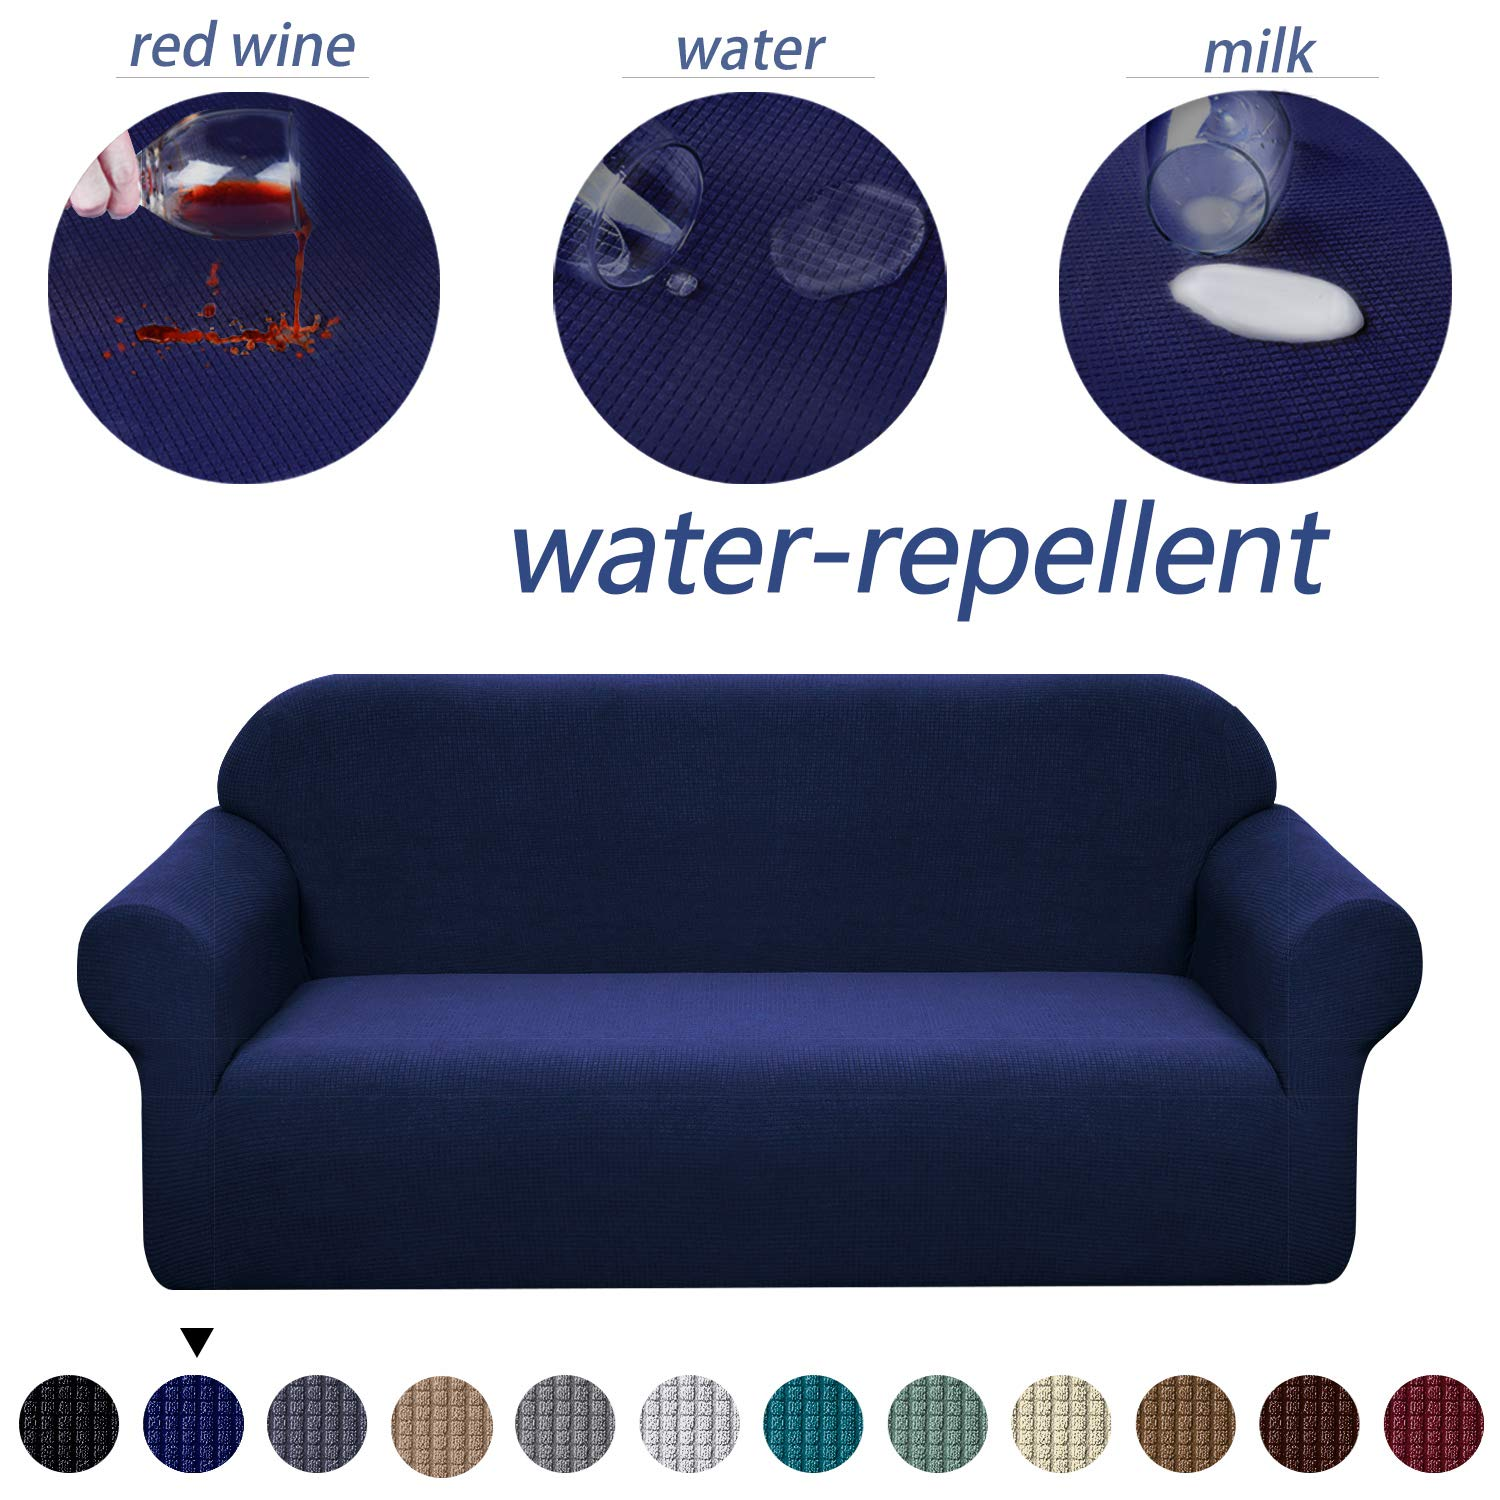 Granbest Premium Water Repellent Sofa Cover High Stretch Couch Slipcover Super Soft Fabric Couch Cover (Navy Blue, XL Sofa)